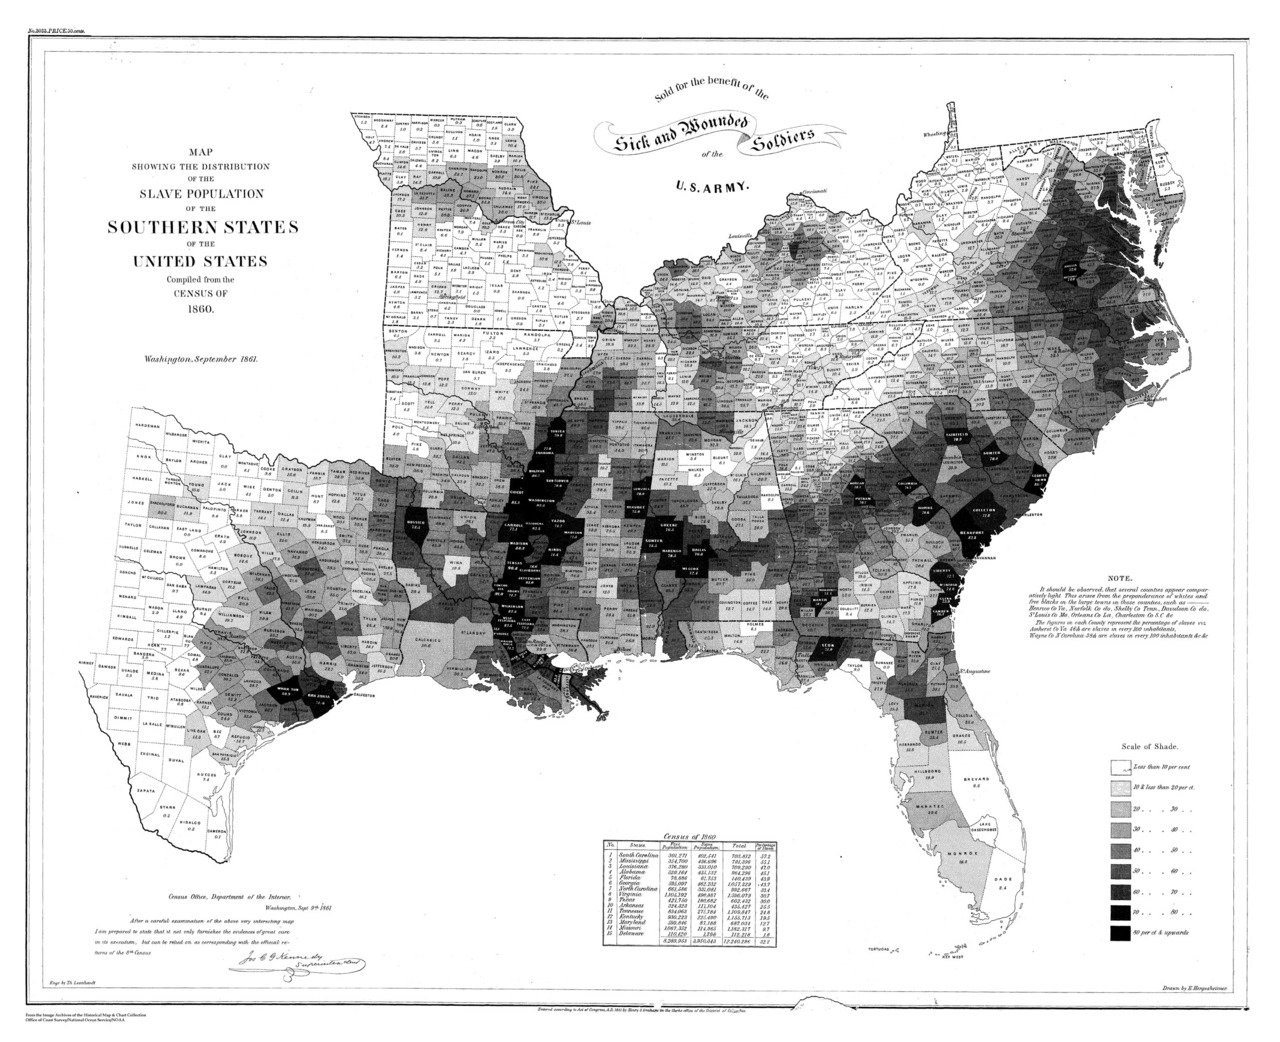 """The Civil War started 150 years ago today. Learn how the map shown above informed the military strategy to end slavery:  Commercial lithographer Henry S. Graham printed this choropleth map showing the distribution of the slave population in September 1861. The map shows in graphic terms the density of the slave population in the Southern states, based on figures from the 1860 census. Although the development of this map was a collaborative government effort, cartographers working for Edwin Hergesheimer, U.S. Coast Survey Drafting Division, created it. The development of this map was revolutionary for its time for several reasons. First, it was among the first of its kind, initiating a trend of statistical cartography in the United States that allowed the thematic mapping of larger social, political, and cultural trends. Second, this map represented an early use of statistical information from the census. Third, new techniques in shading developed by Hergesheimer were a path-breaking application of these new techniques to human geography. Finally, its makers went as far to use """"moral statistics"""" in order to affect political change. … The map was created to understand the secession crisis, by providing a visual link between secession and slavery. The mapmakers consciously limited the map to just the Southern states, including the Border States of Maryland, Virginia, and Kentucky, but not the Western slave states of Nebraska, New Mexico, and Utah. During and after the war, the map then could be used by the Union to argue that the destruction of the Confederacy meant the destruction of slavery. There is a strong message in the banner at the top of the map that reads """"For the Sick and Wounded Soldiers of the U.S. Army."""" According to artist Francis Bicknell Carpenter, this map was frequently consulted by President Abraham Lincoln in considering the relationship between emancipation and military strategy. Carpenter took up residence at the White House in February 1864 to p"""